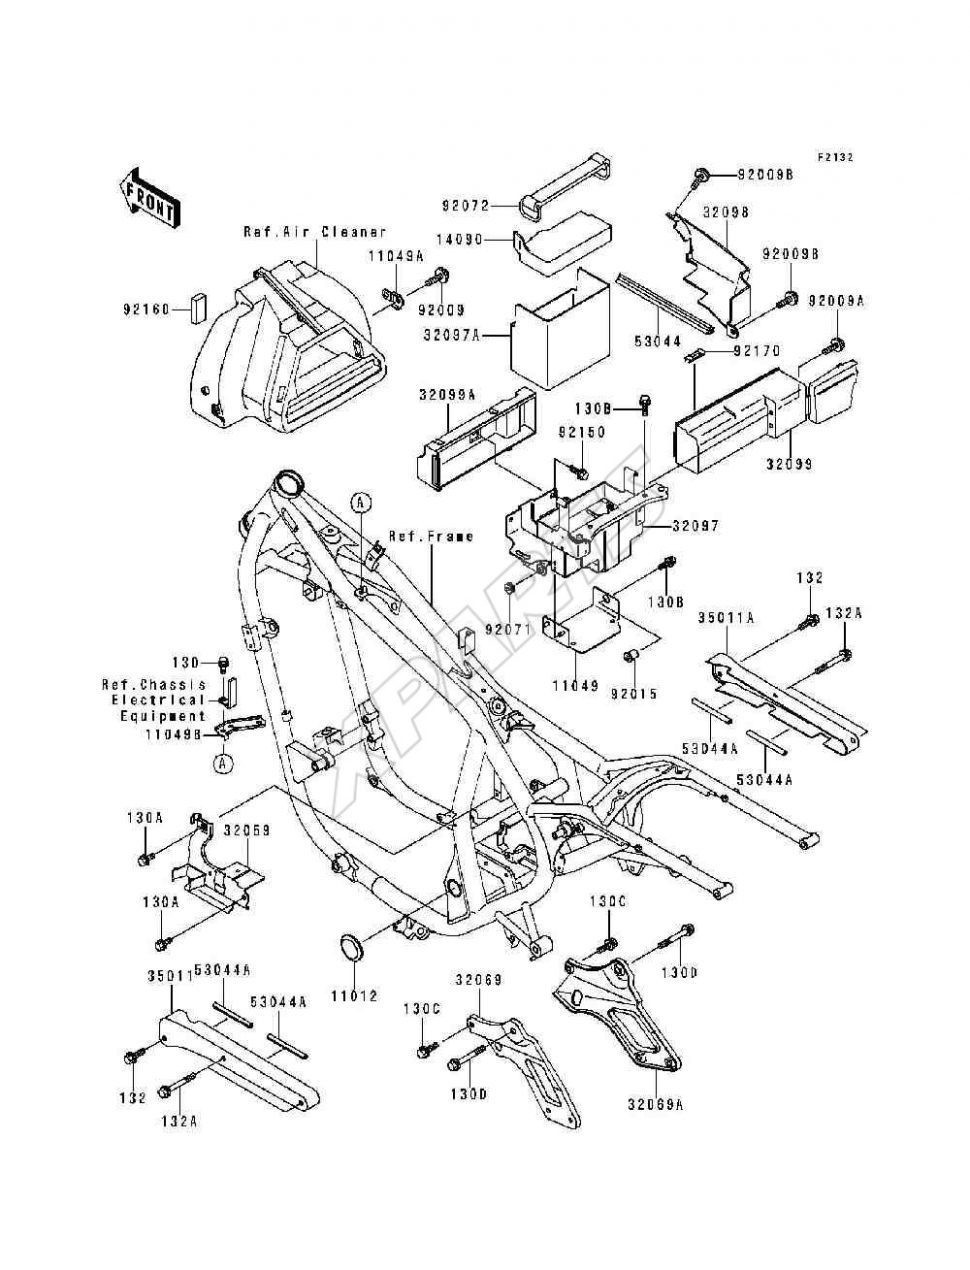 wiring diagram best 10 of stratocaster data wiring diagram blog wiring diagram best 10 of stratocaster auto electrical wiring diagram fender strat guitar wiring diagrams wiring